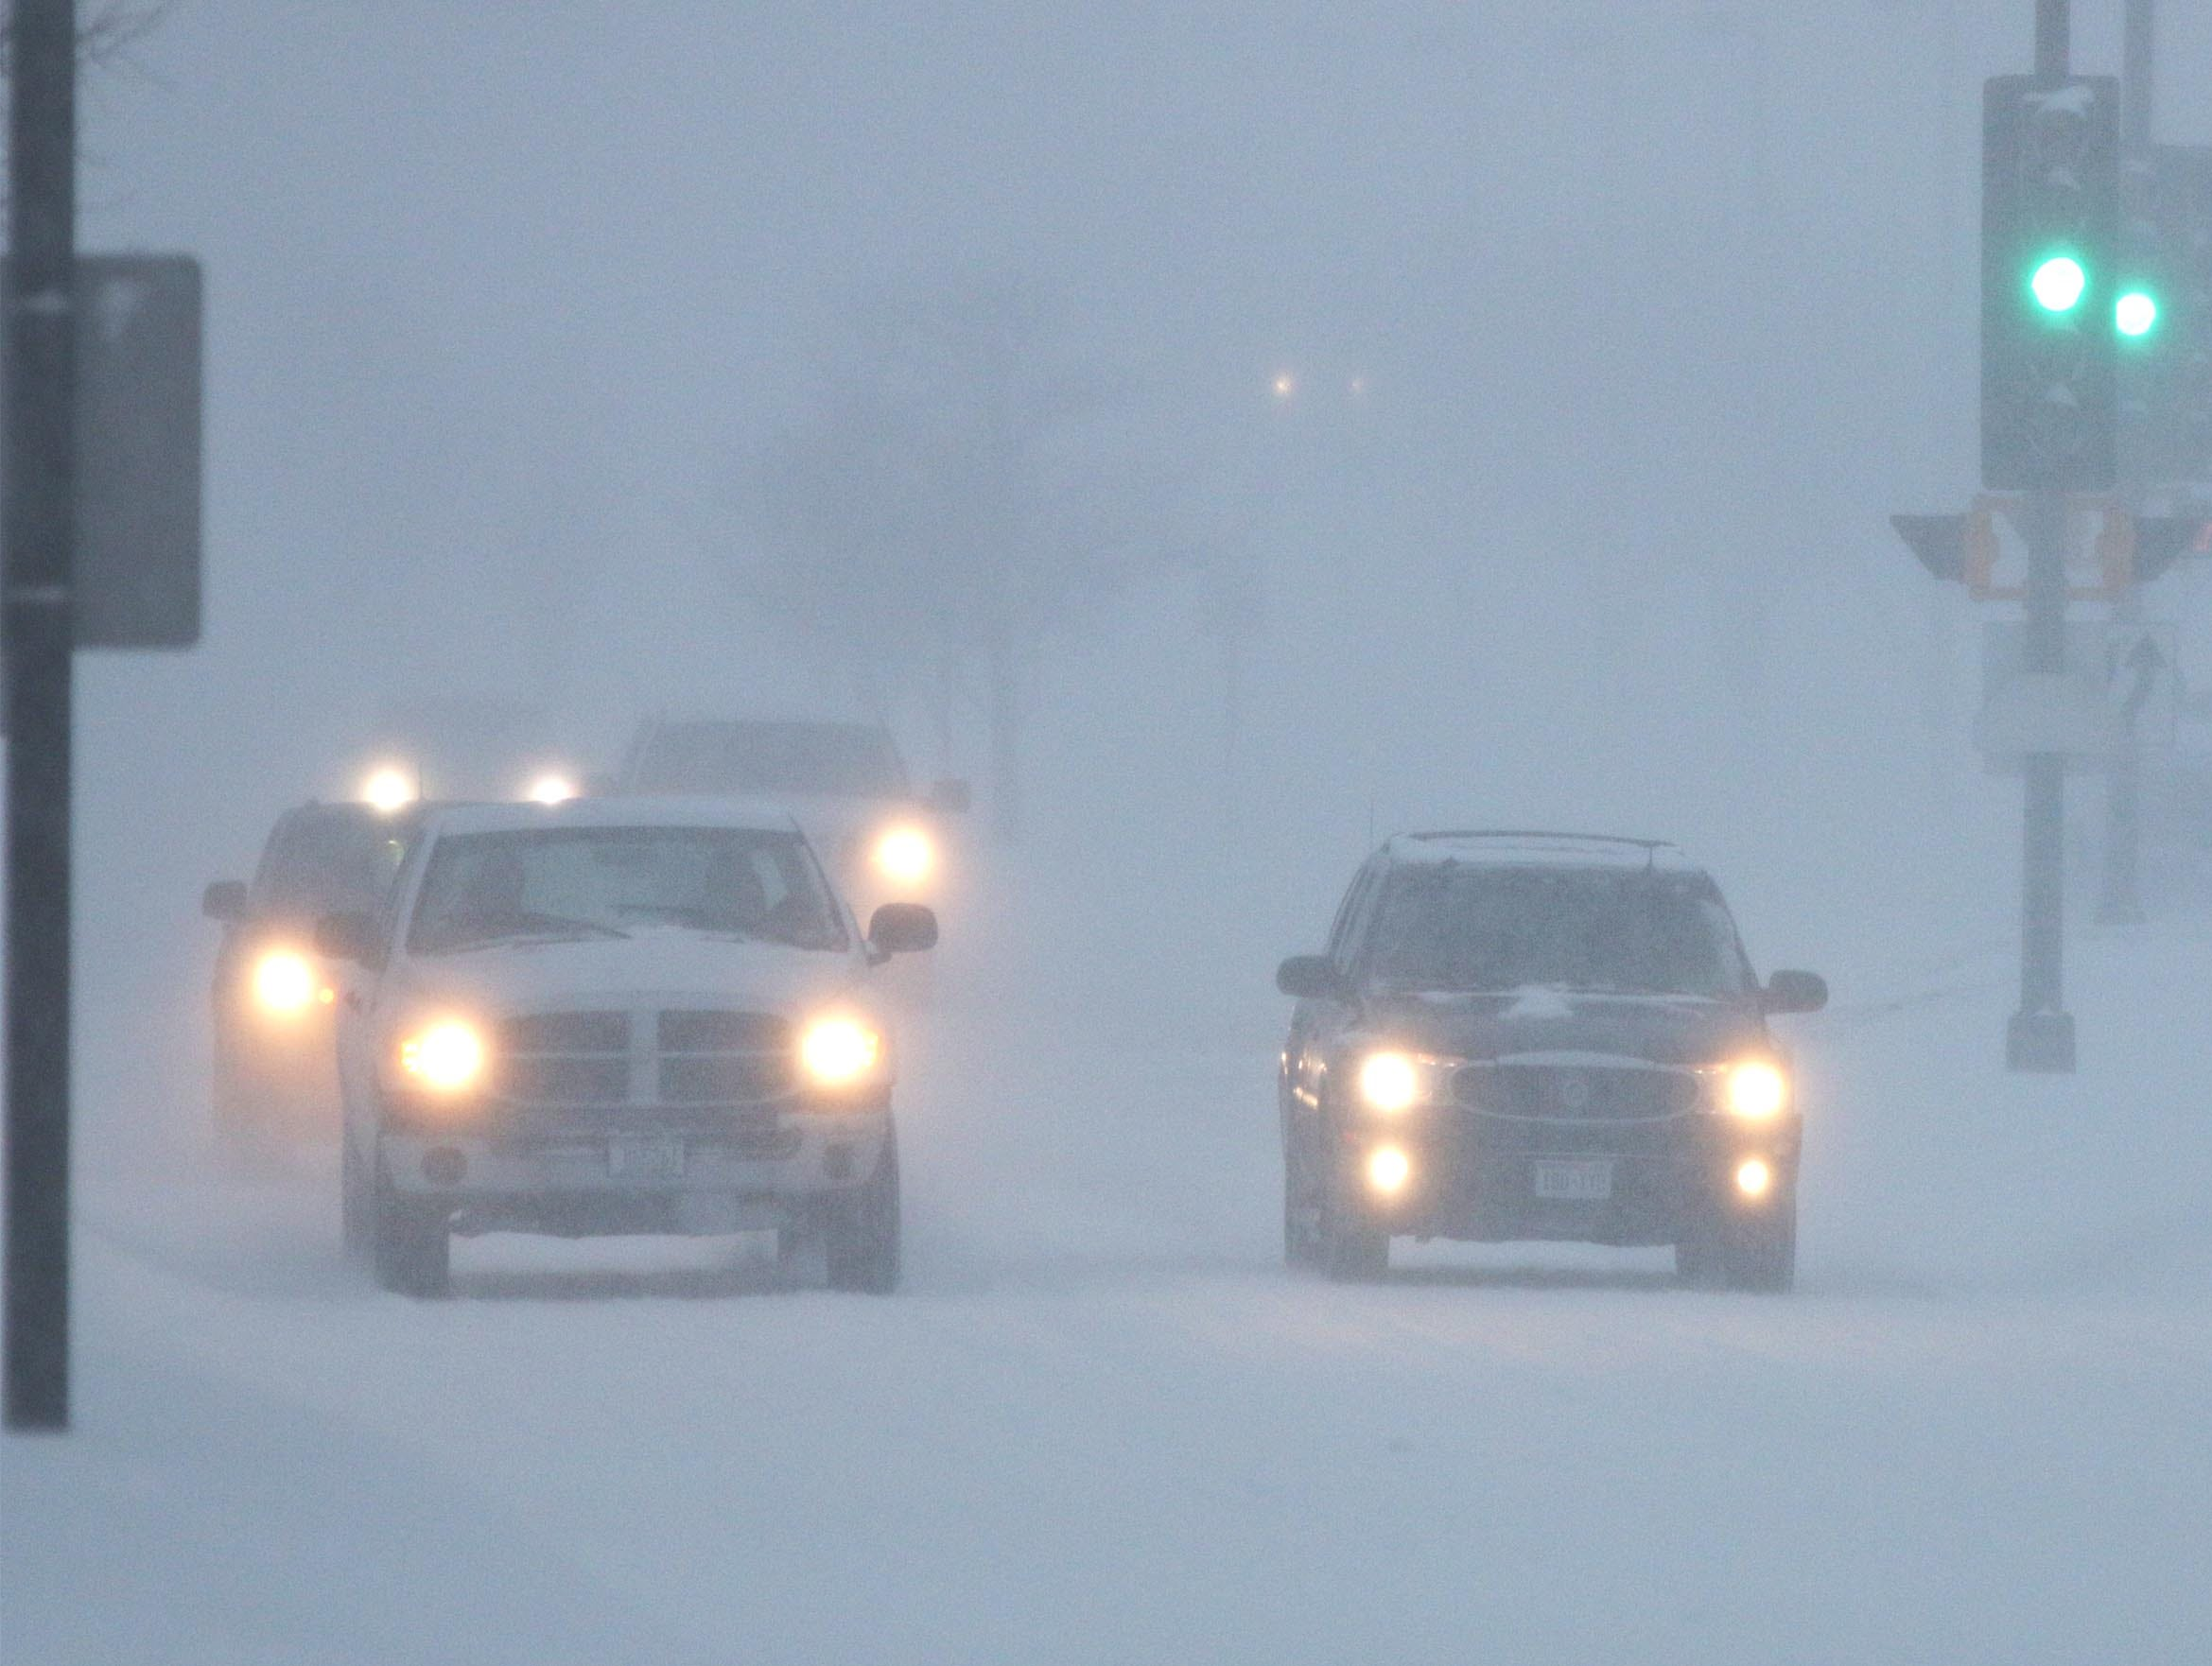 Drivers found limited visibility on Kohler Memorial Drive, Tuesday, February 12, 2019, in Sheboygan, Wis. Snows closed many schools and activities.